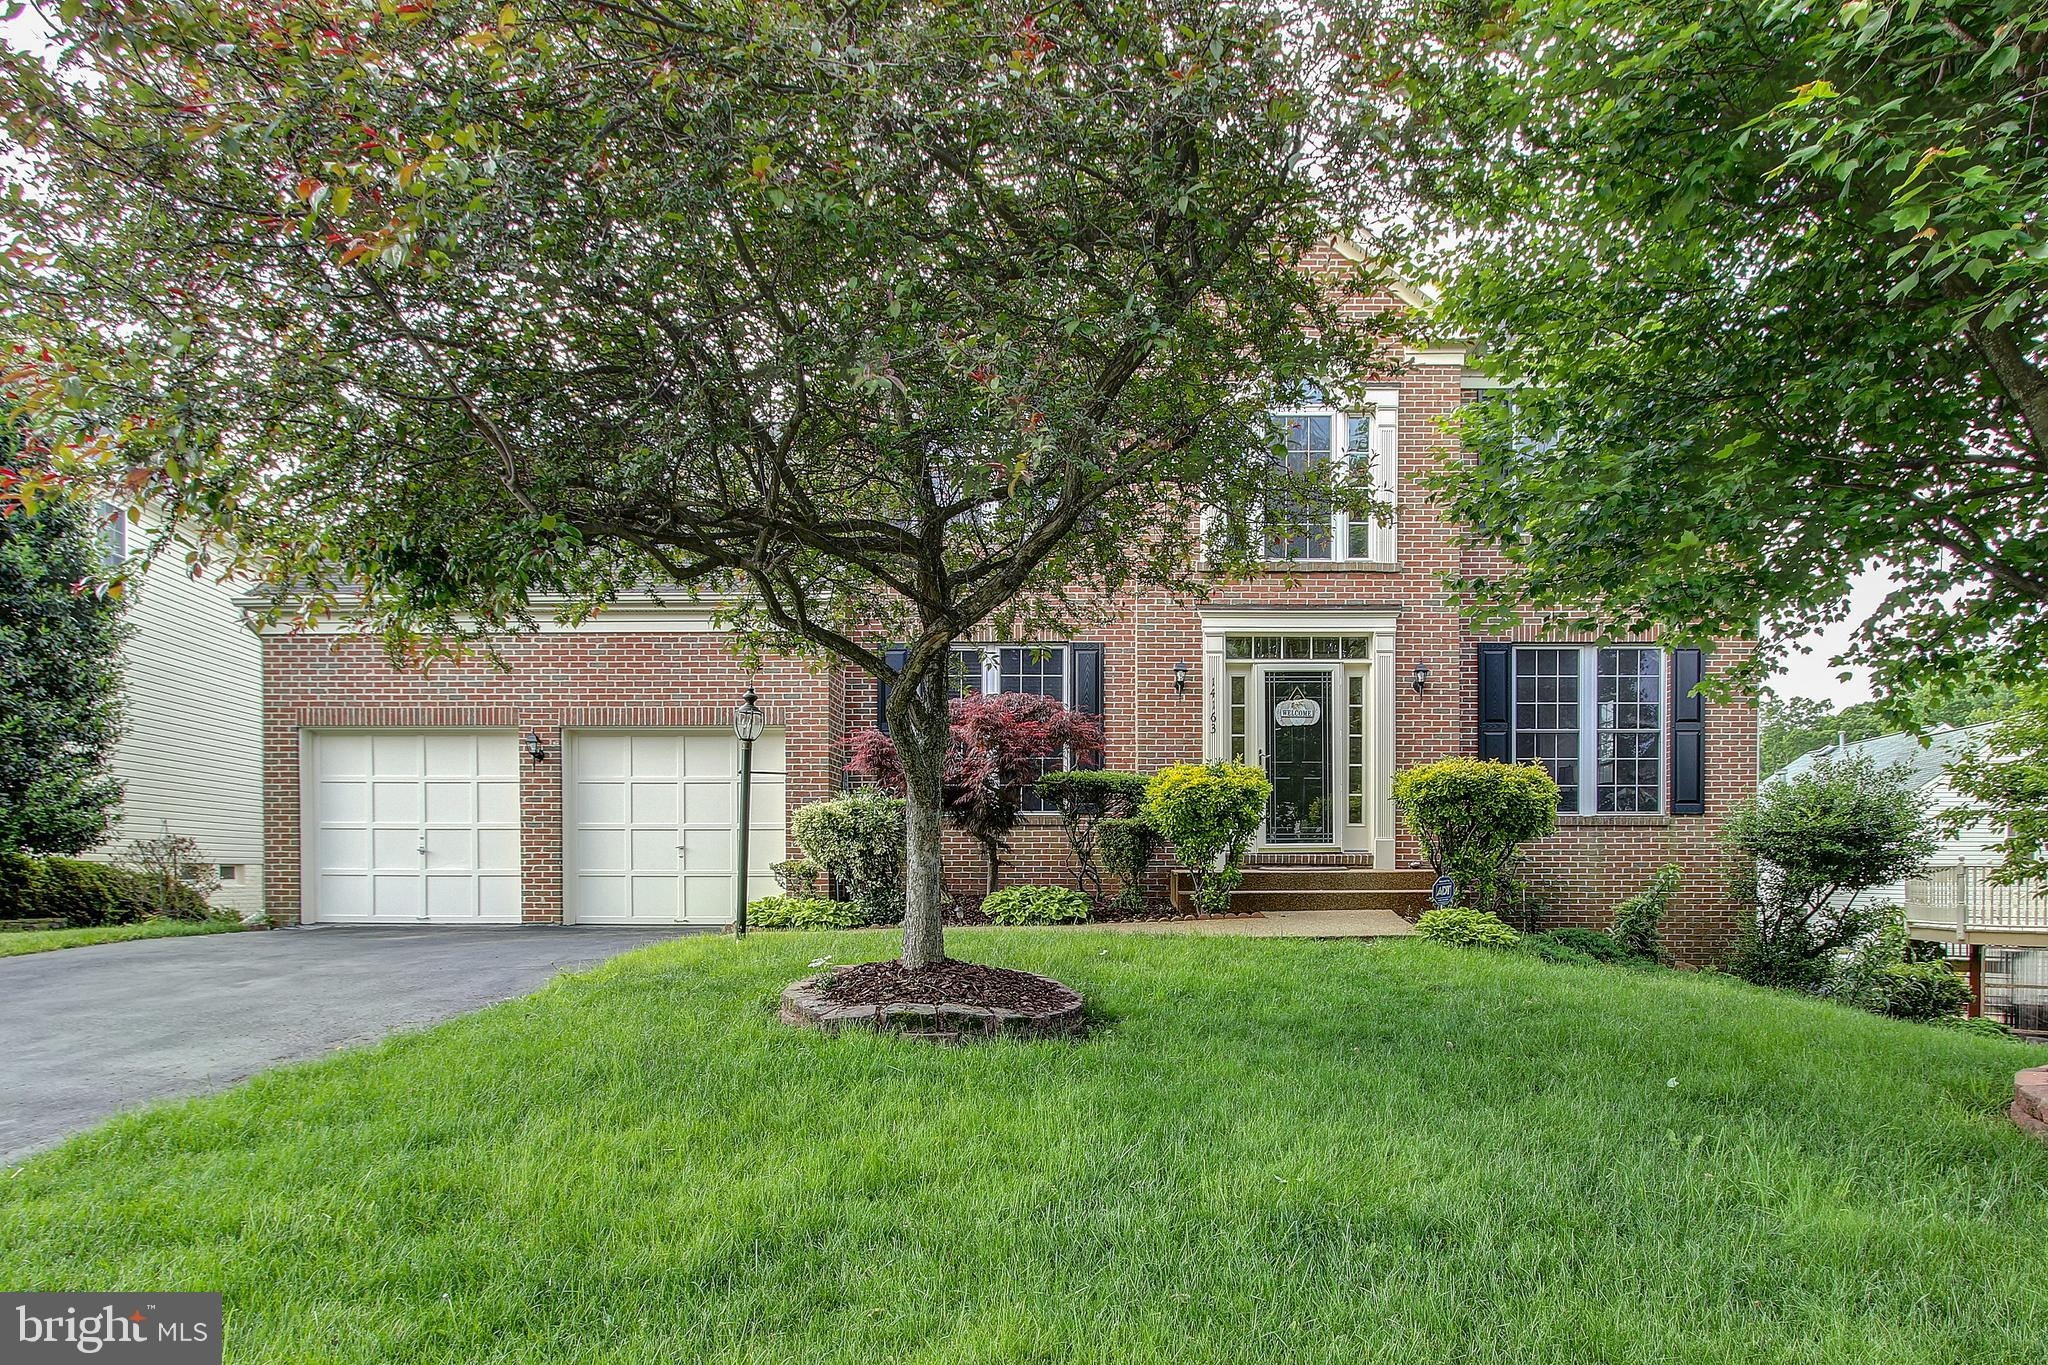 14163 COBLE LASKEY COURT, CENTREVILLE, VA 20121